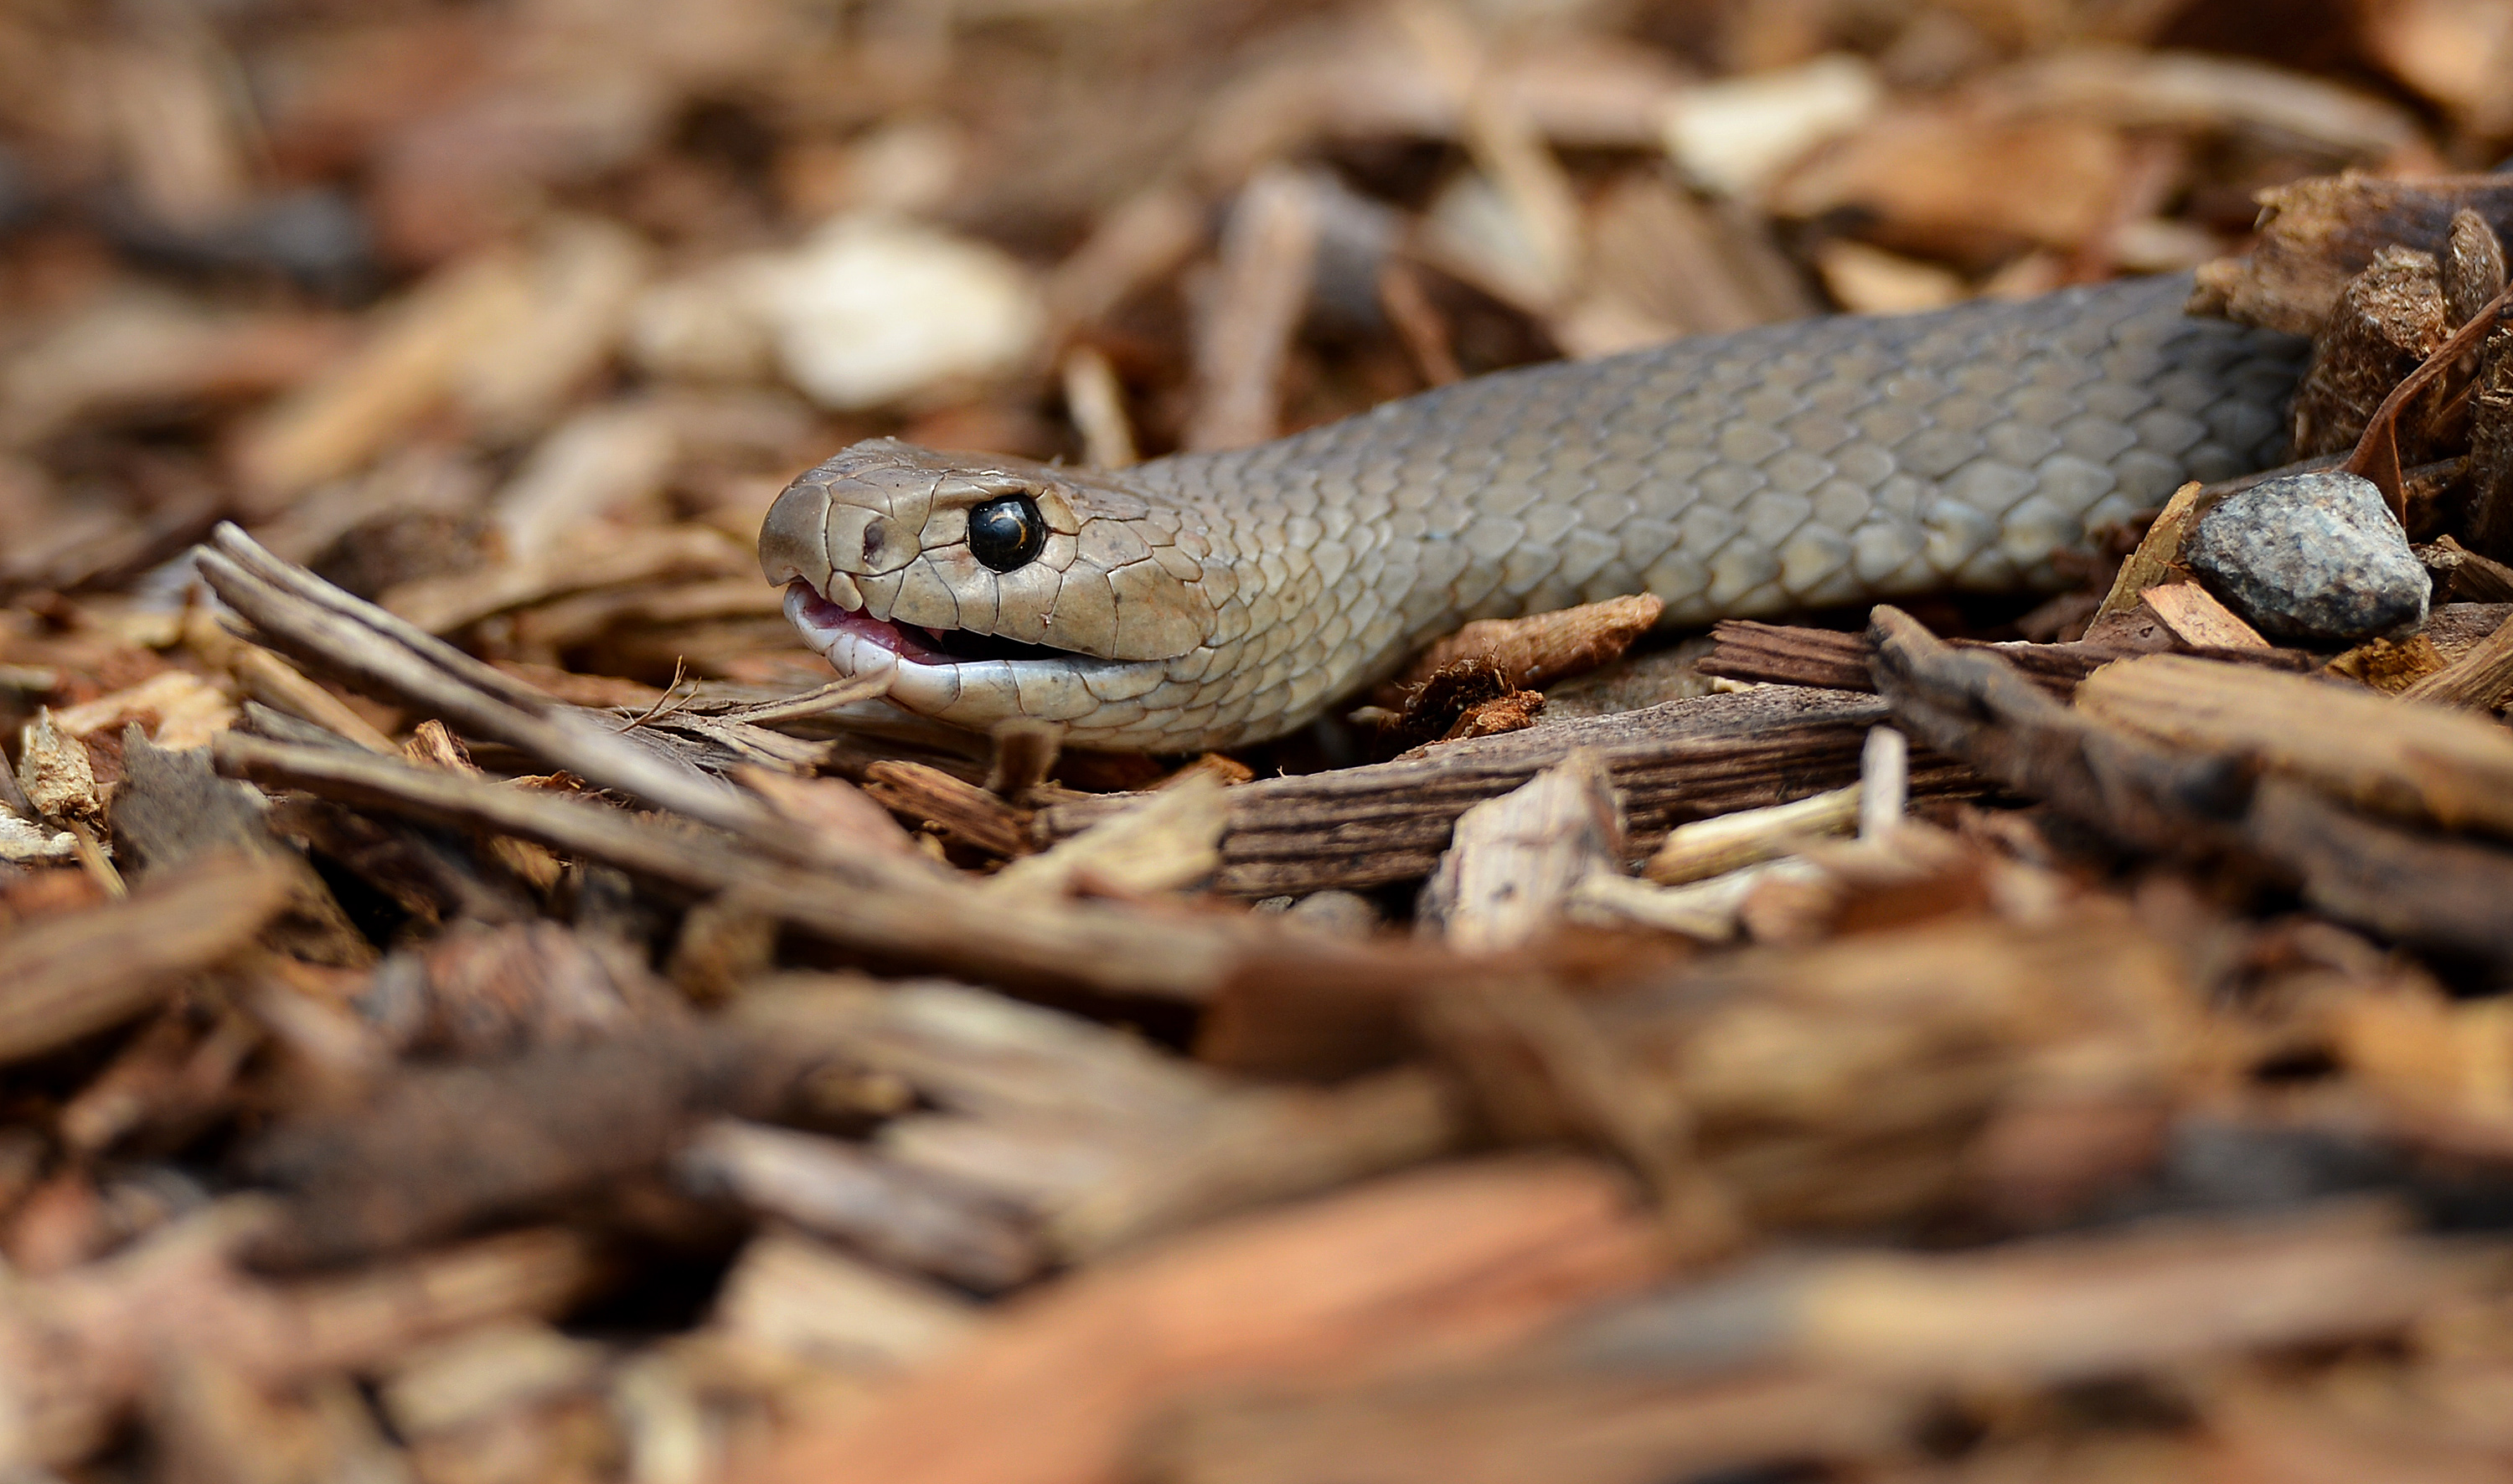 Highly venomous snake found slithering in child's bedroom